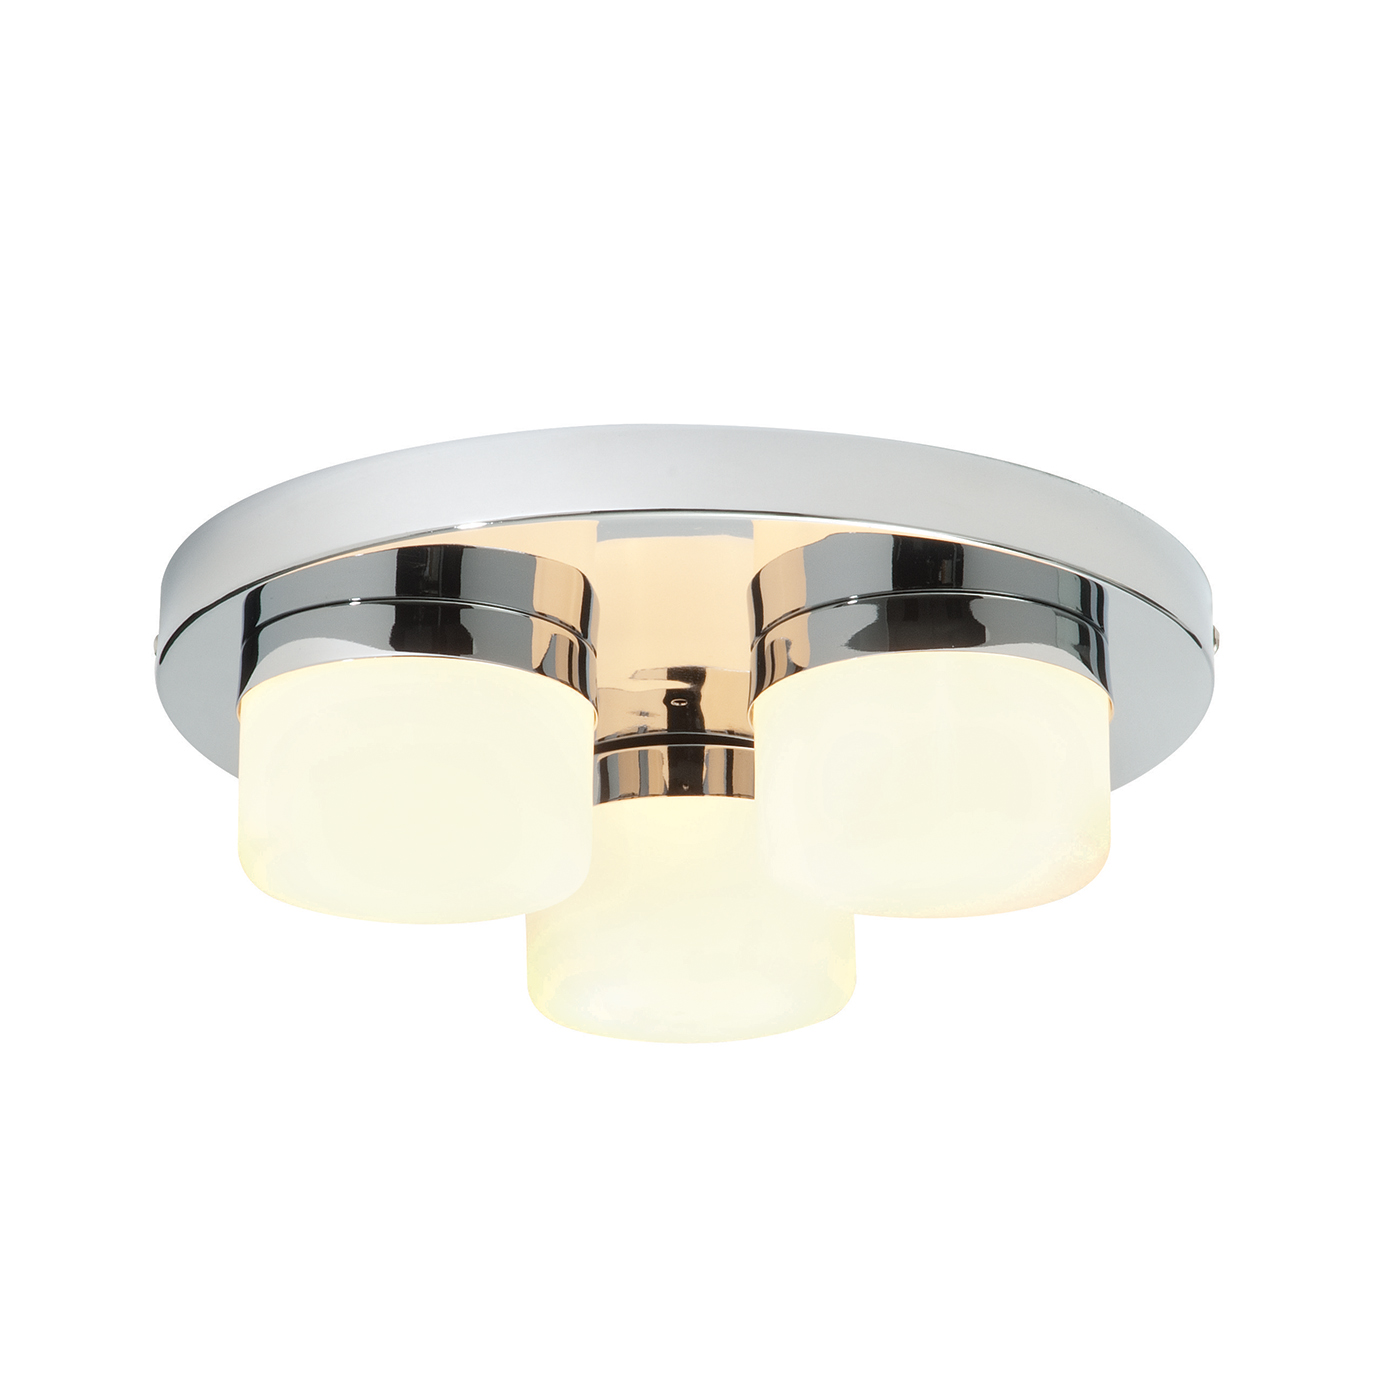 Endon Pure 3lt flush bathroom ceiling light IP44 28W chrome opal glass